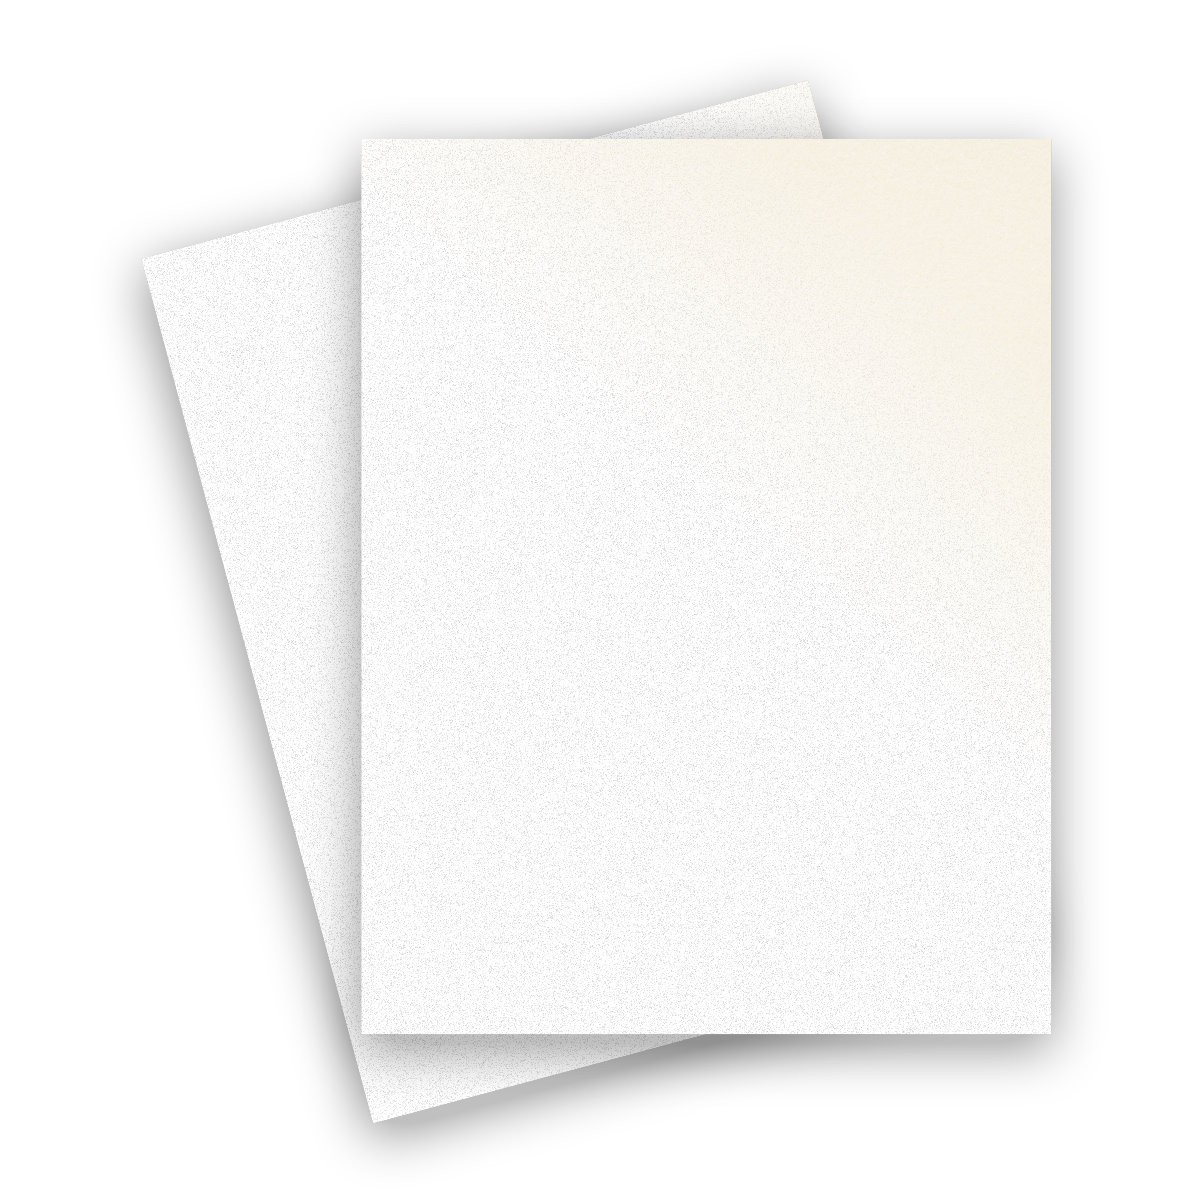 PaperPapers.com #111 Ice Gold Shimmer Cardstock - 25 pack